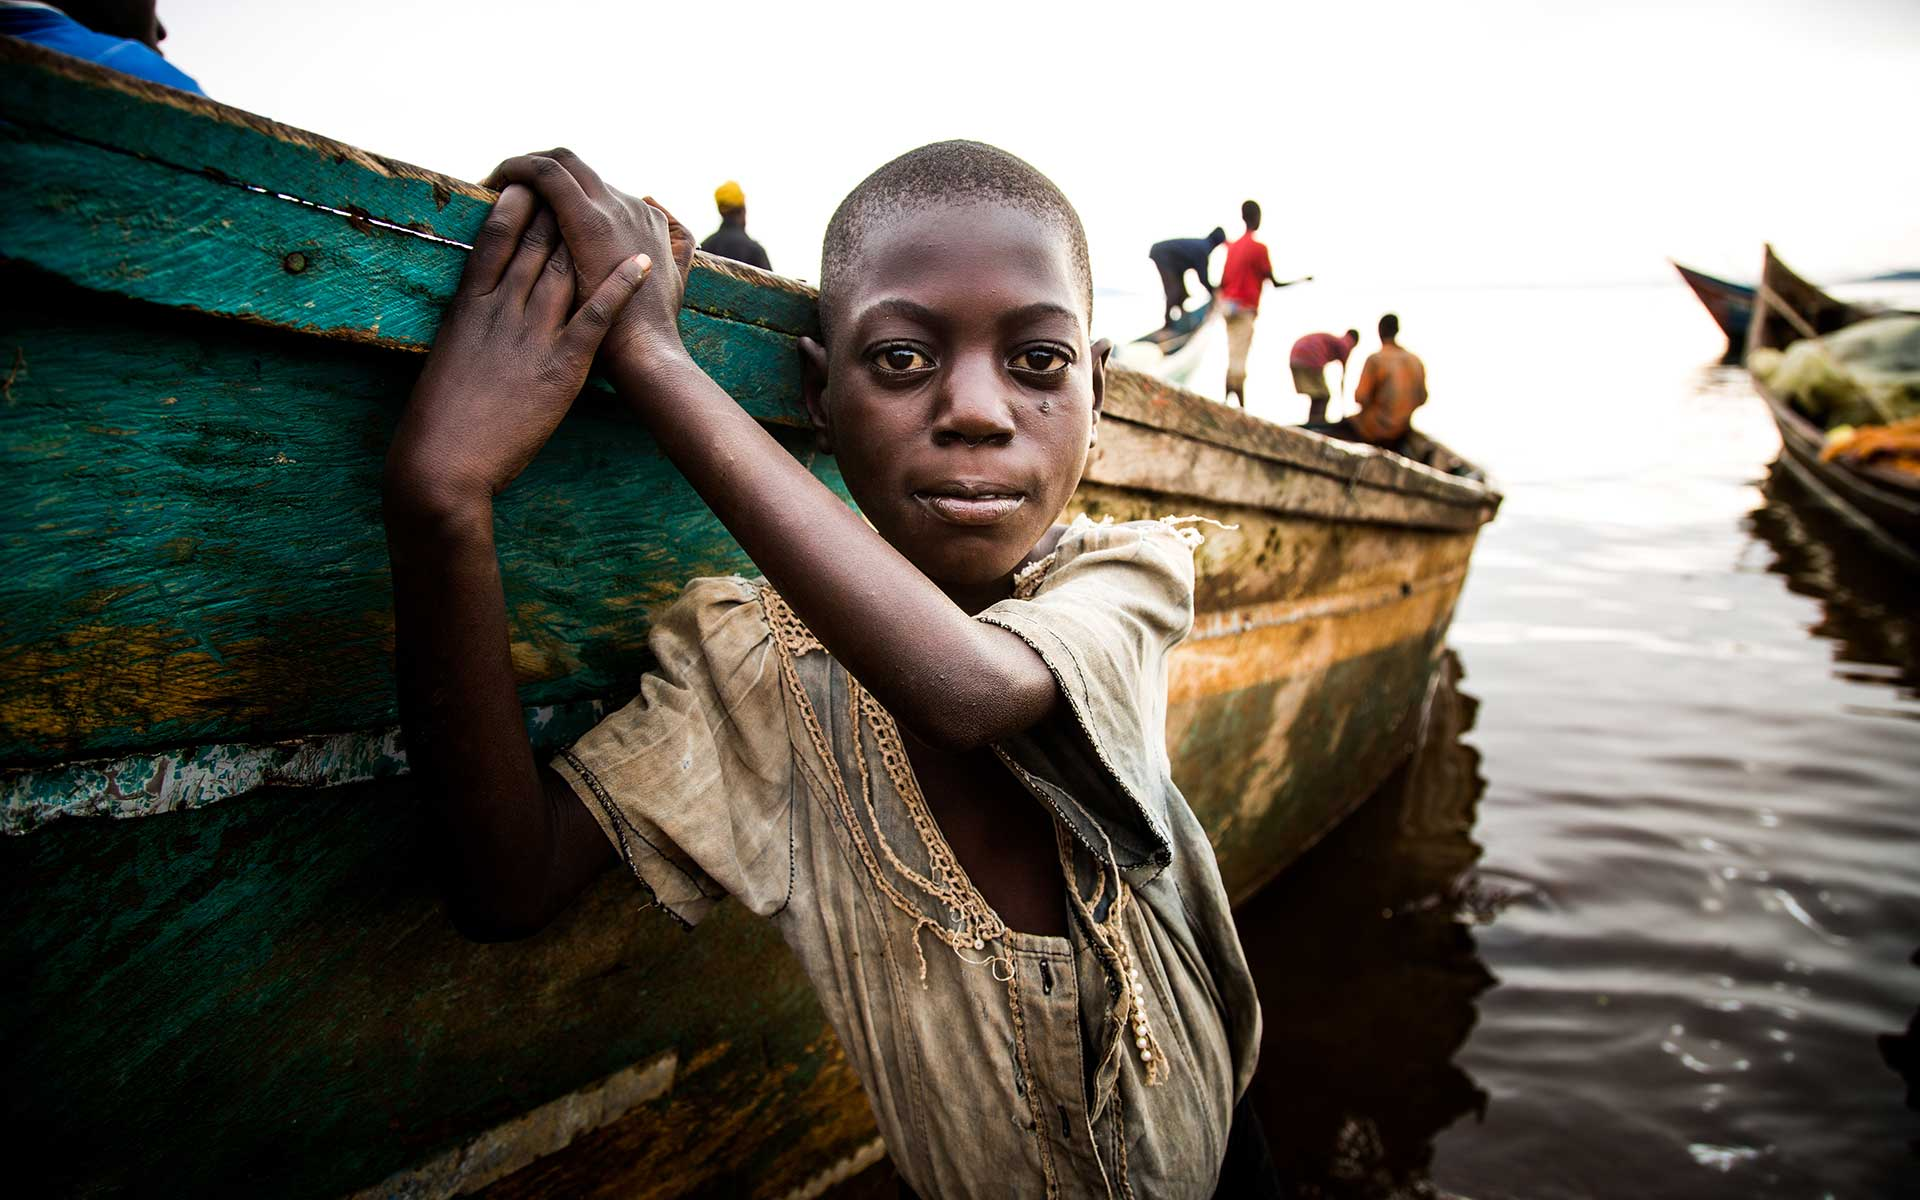 A boy plays near a boat in a Ugandan village